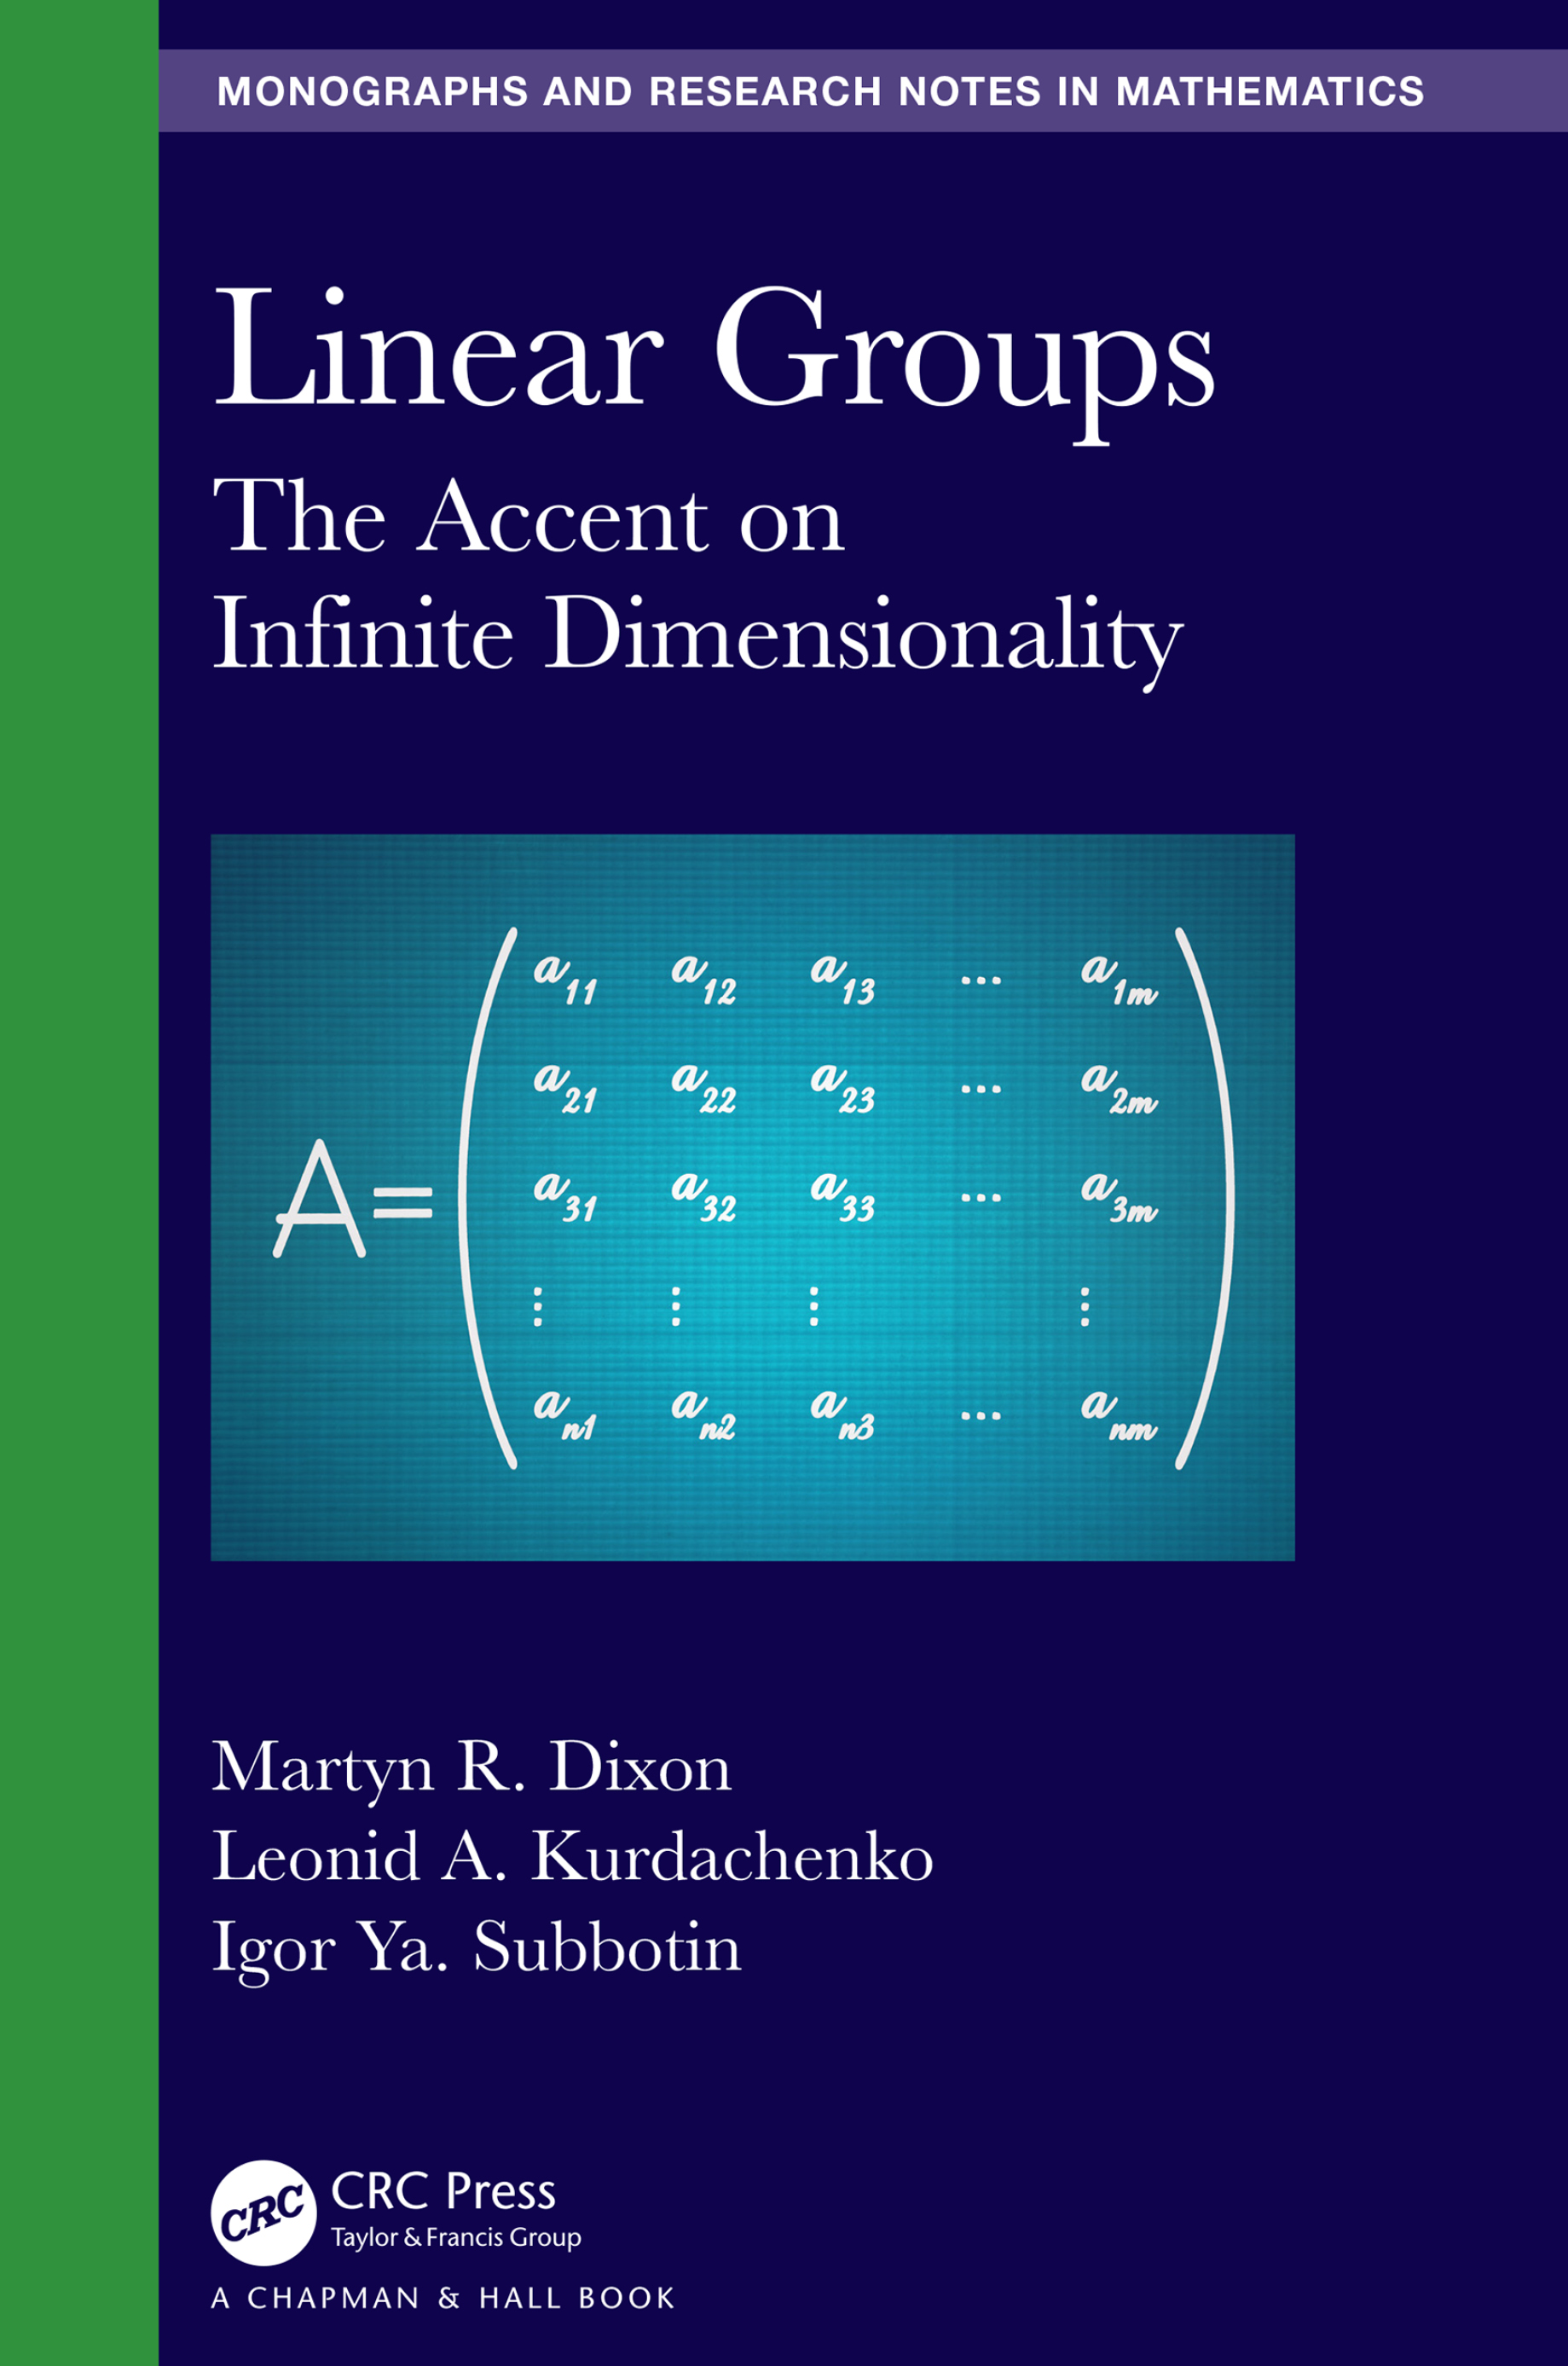 Linear Groups: The Accent on Infinite Dimensionality book cover